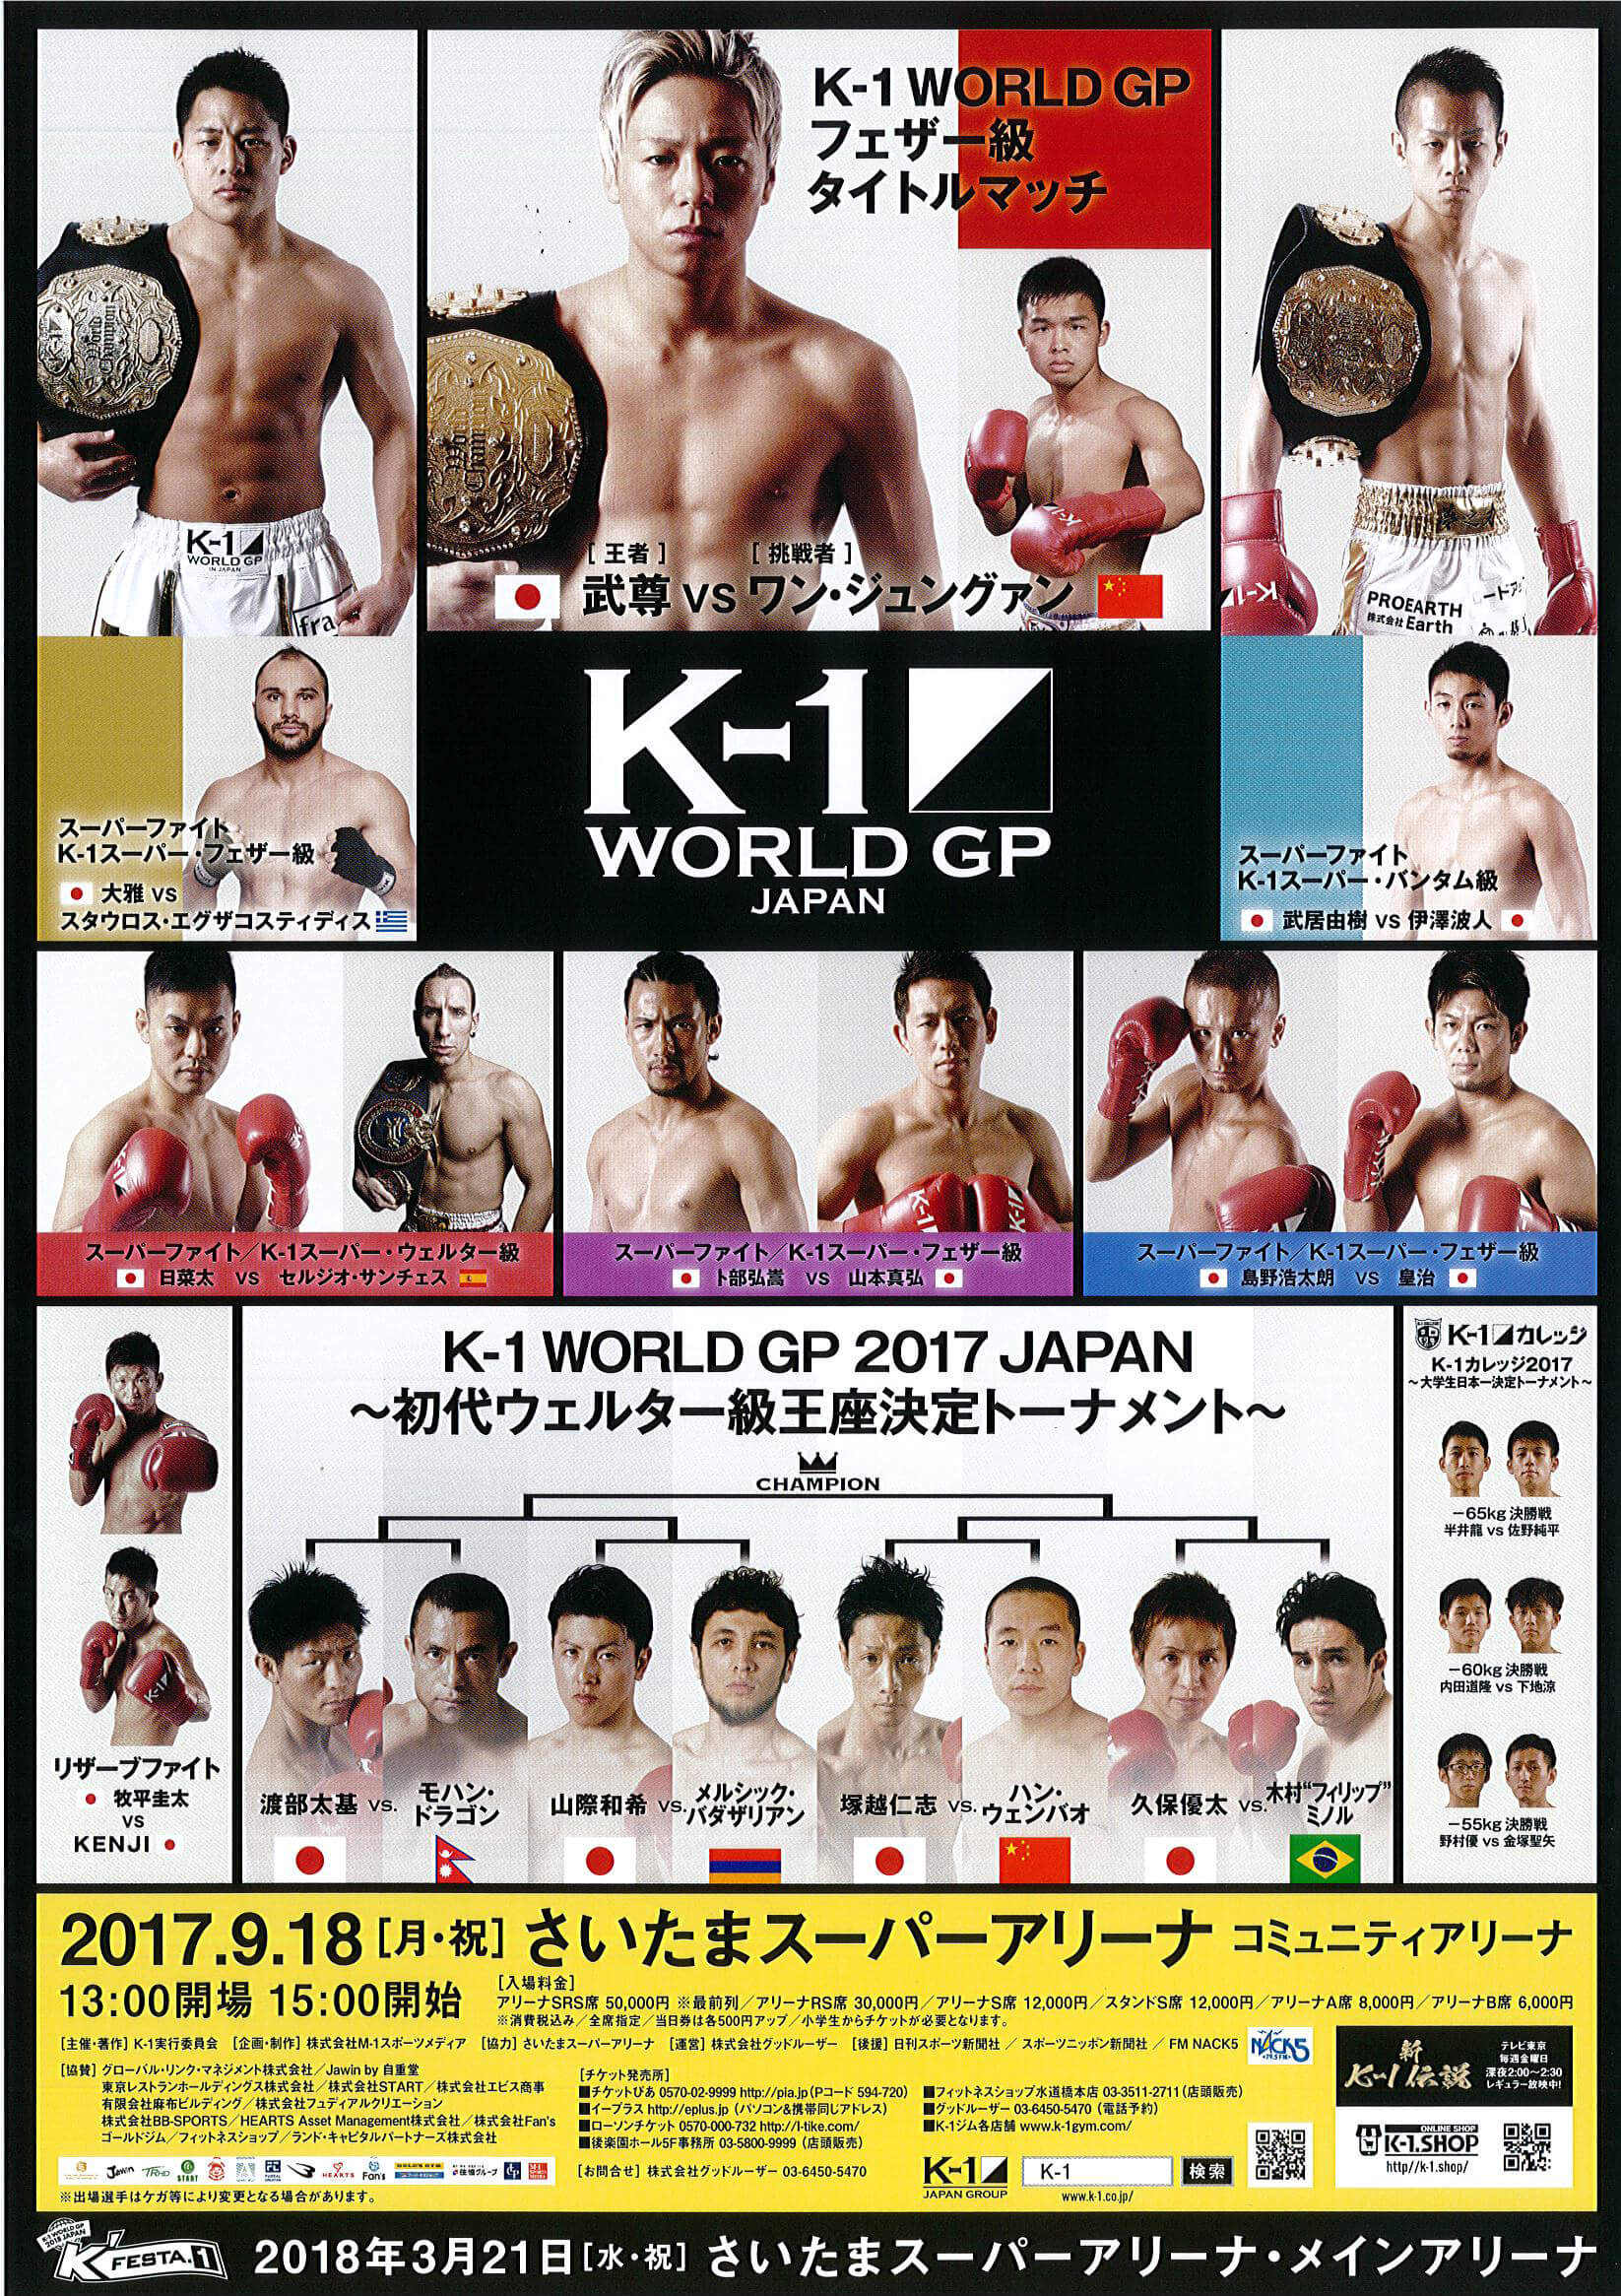 K-1WORLD GP 2017 JAPAN & Krush 大会情報